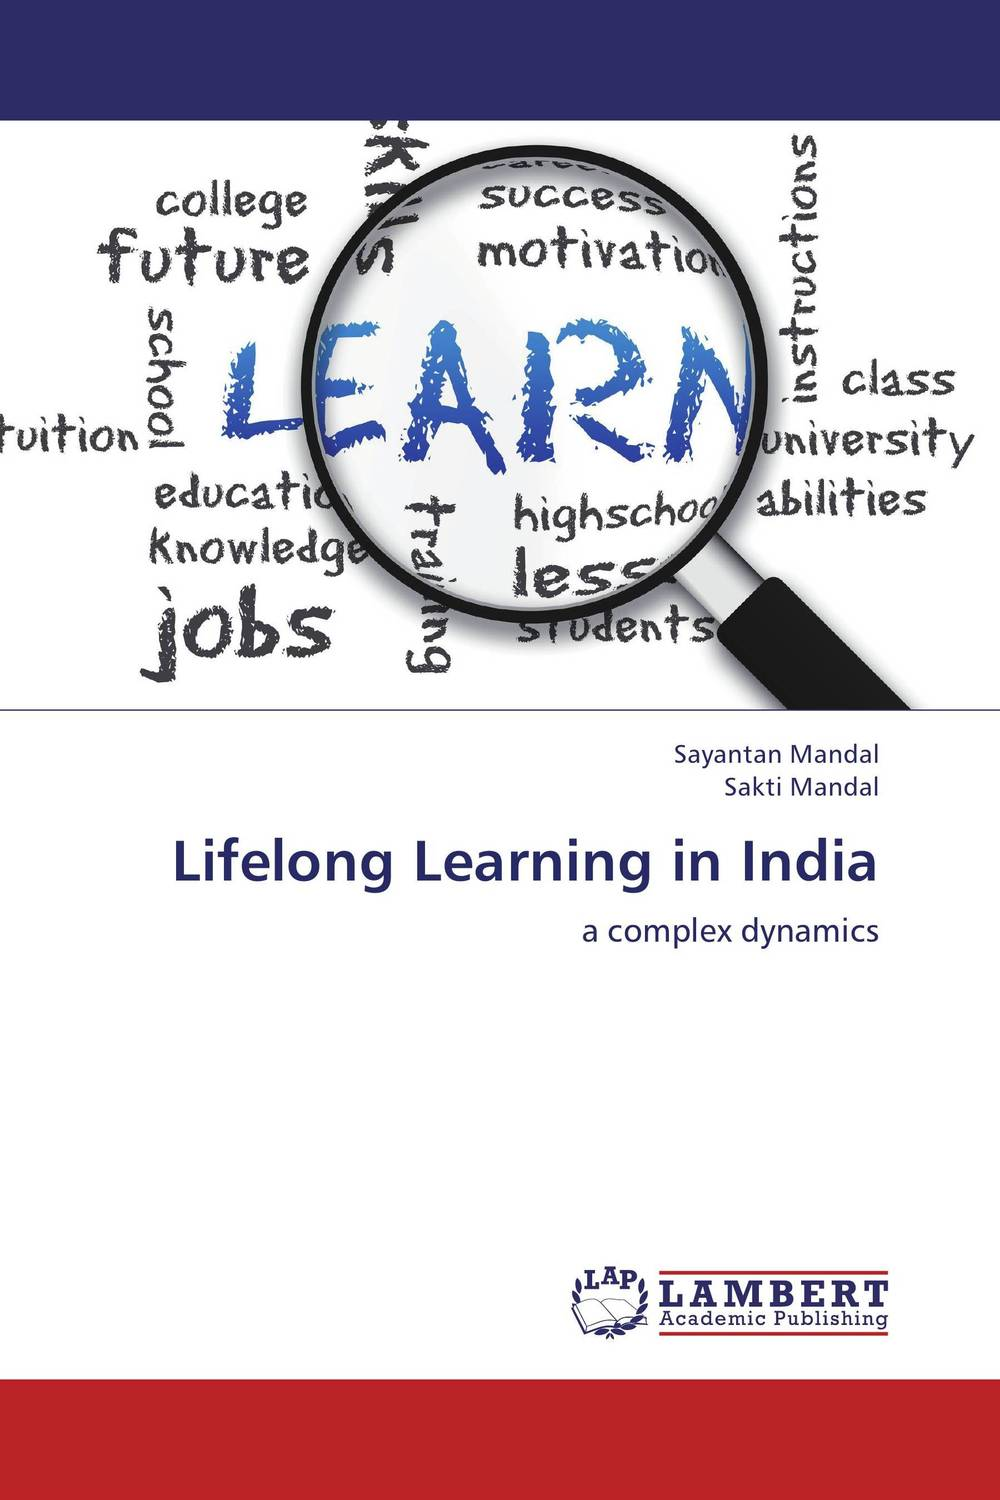 Lifelong Learning in India a research literature review of topology optimization